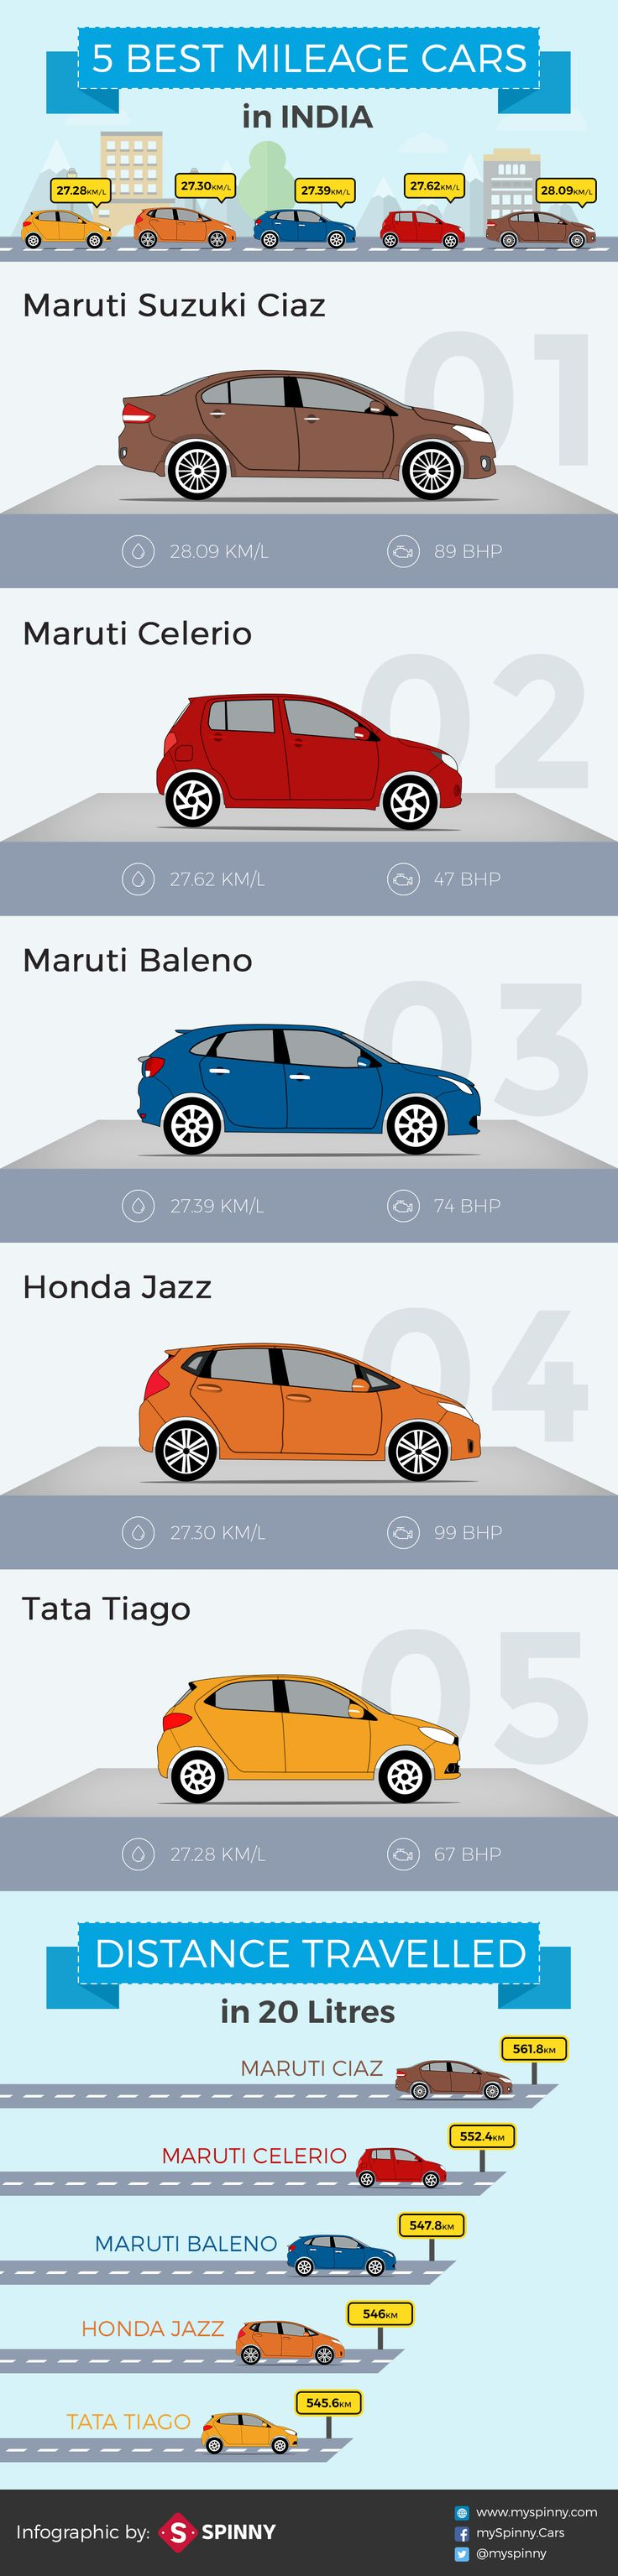 The Best Mileage Cars in India Inforgraphic made by Spinny (myspinny.com). The most trusted platform for buying and selling Pre-Owned Cars in India